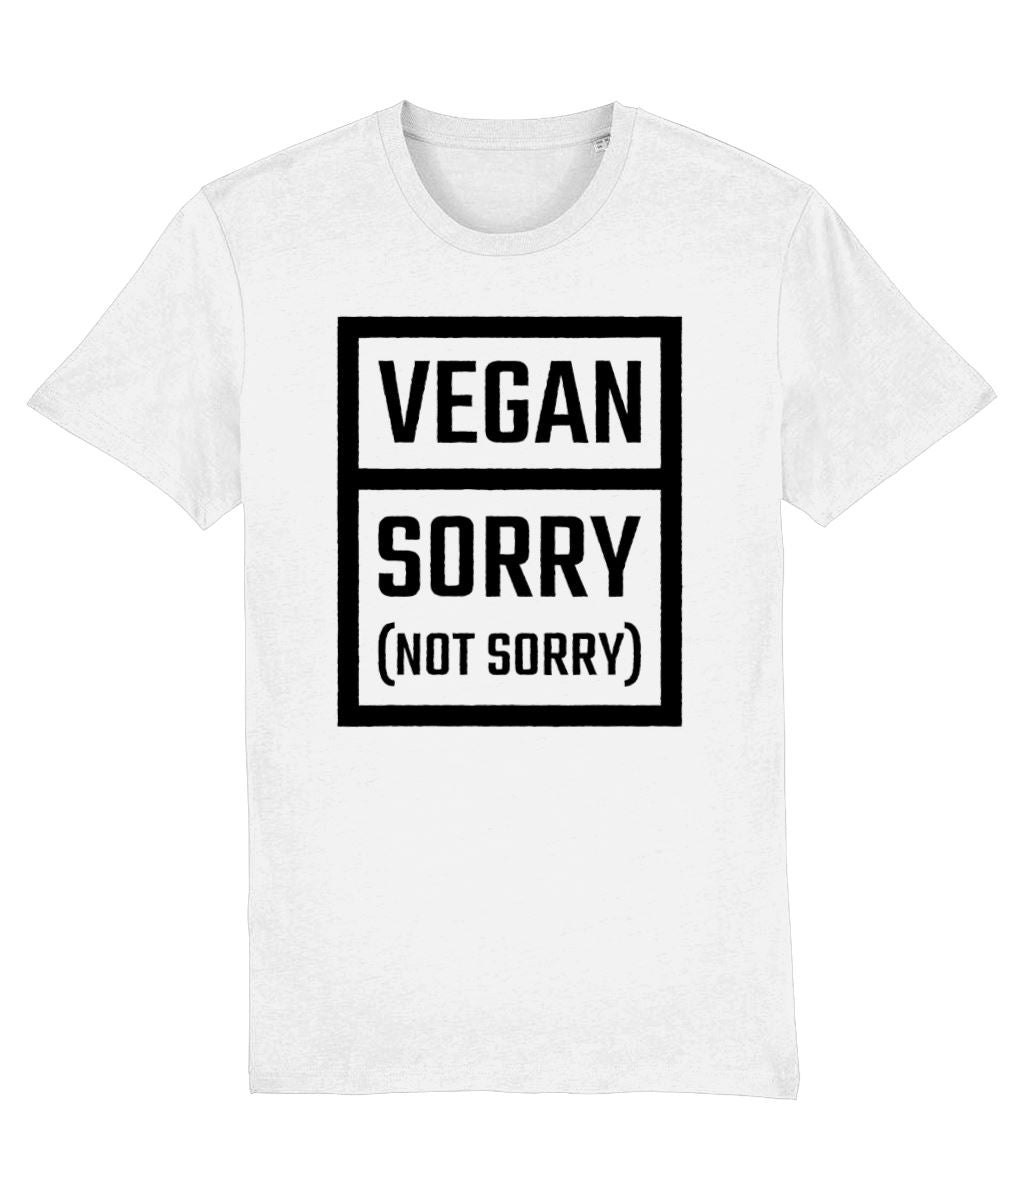 """Vegan: Sorry (Not Sorry)"" T-Shirt - 100% Organic Cotton (Unisex) Clothing Vegan Original White XX-Small"